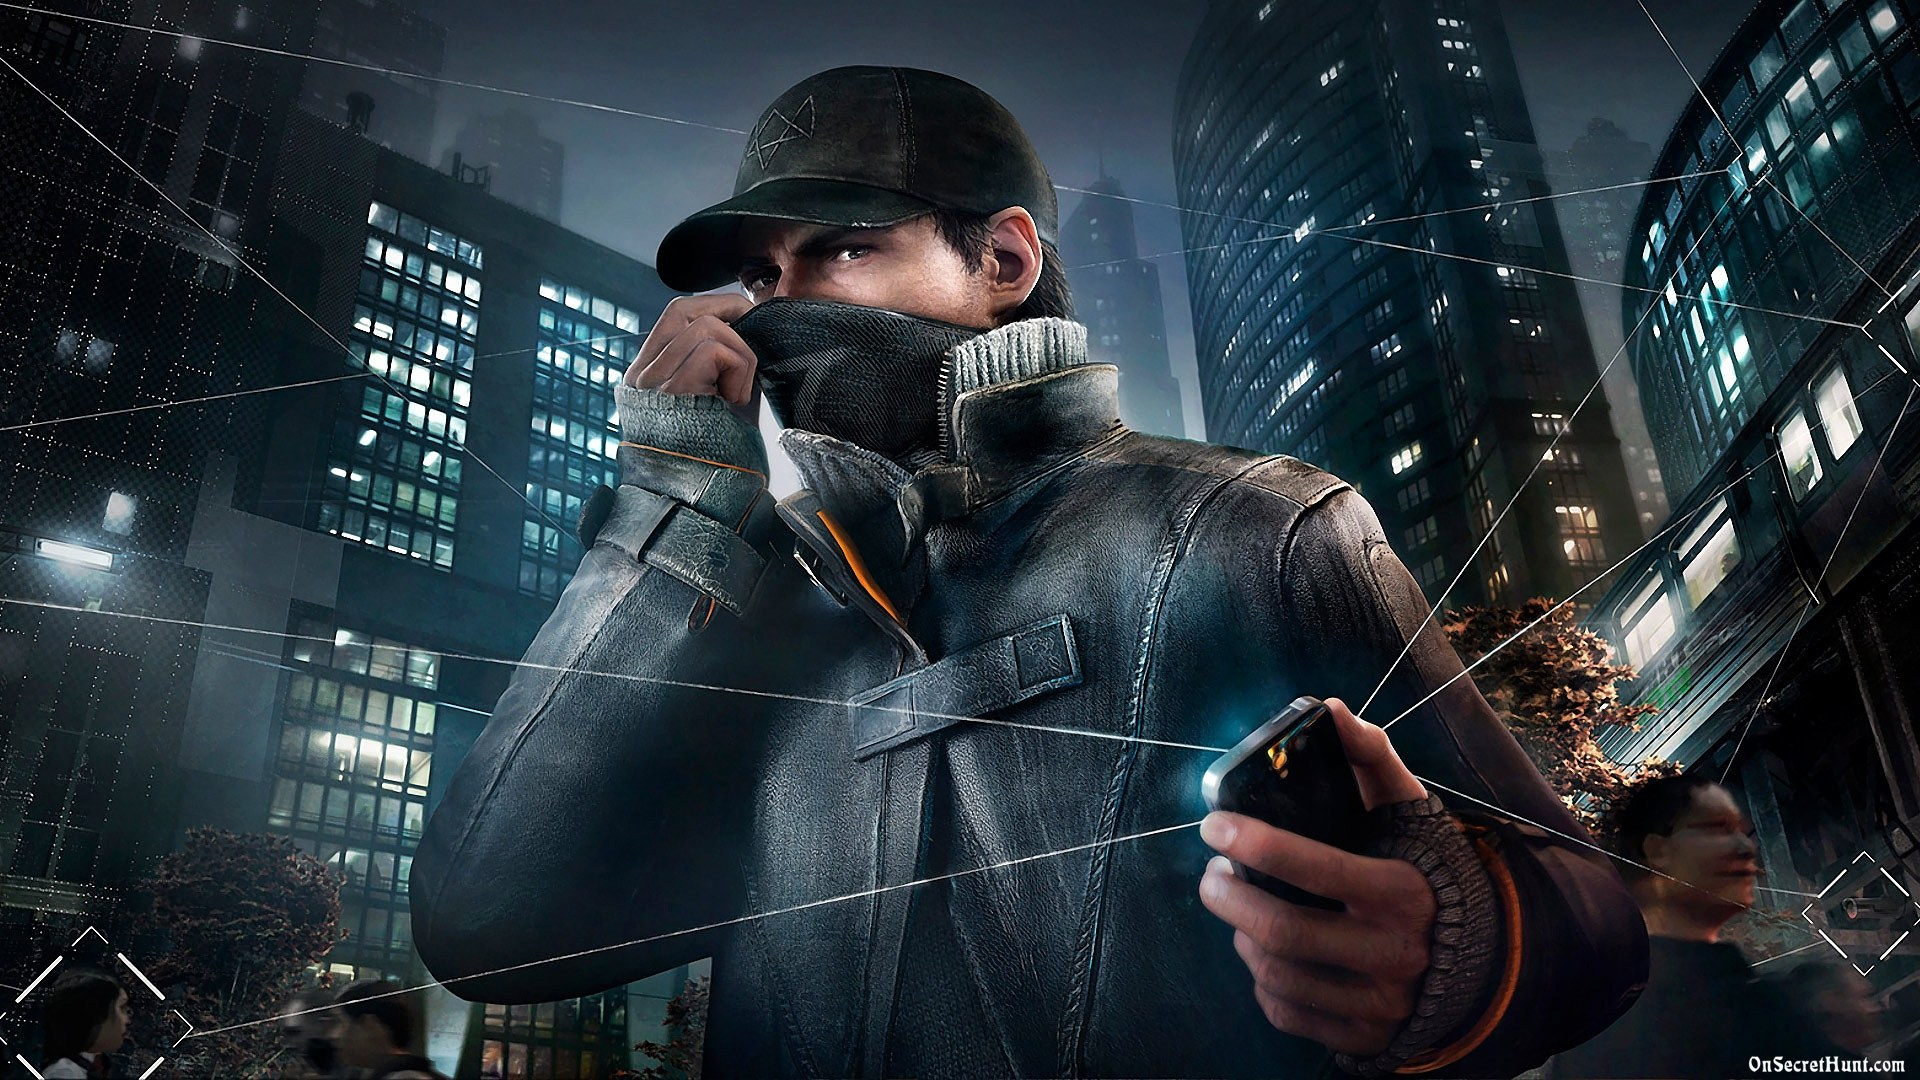 watch dogs live wallpaper - photo #9